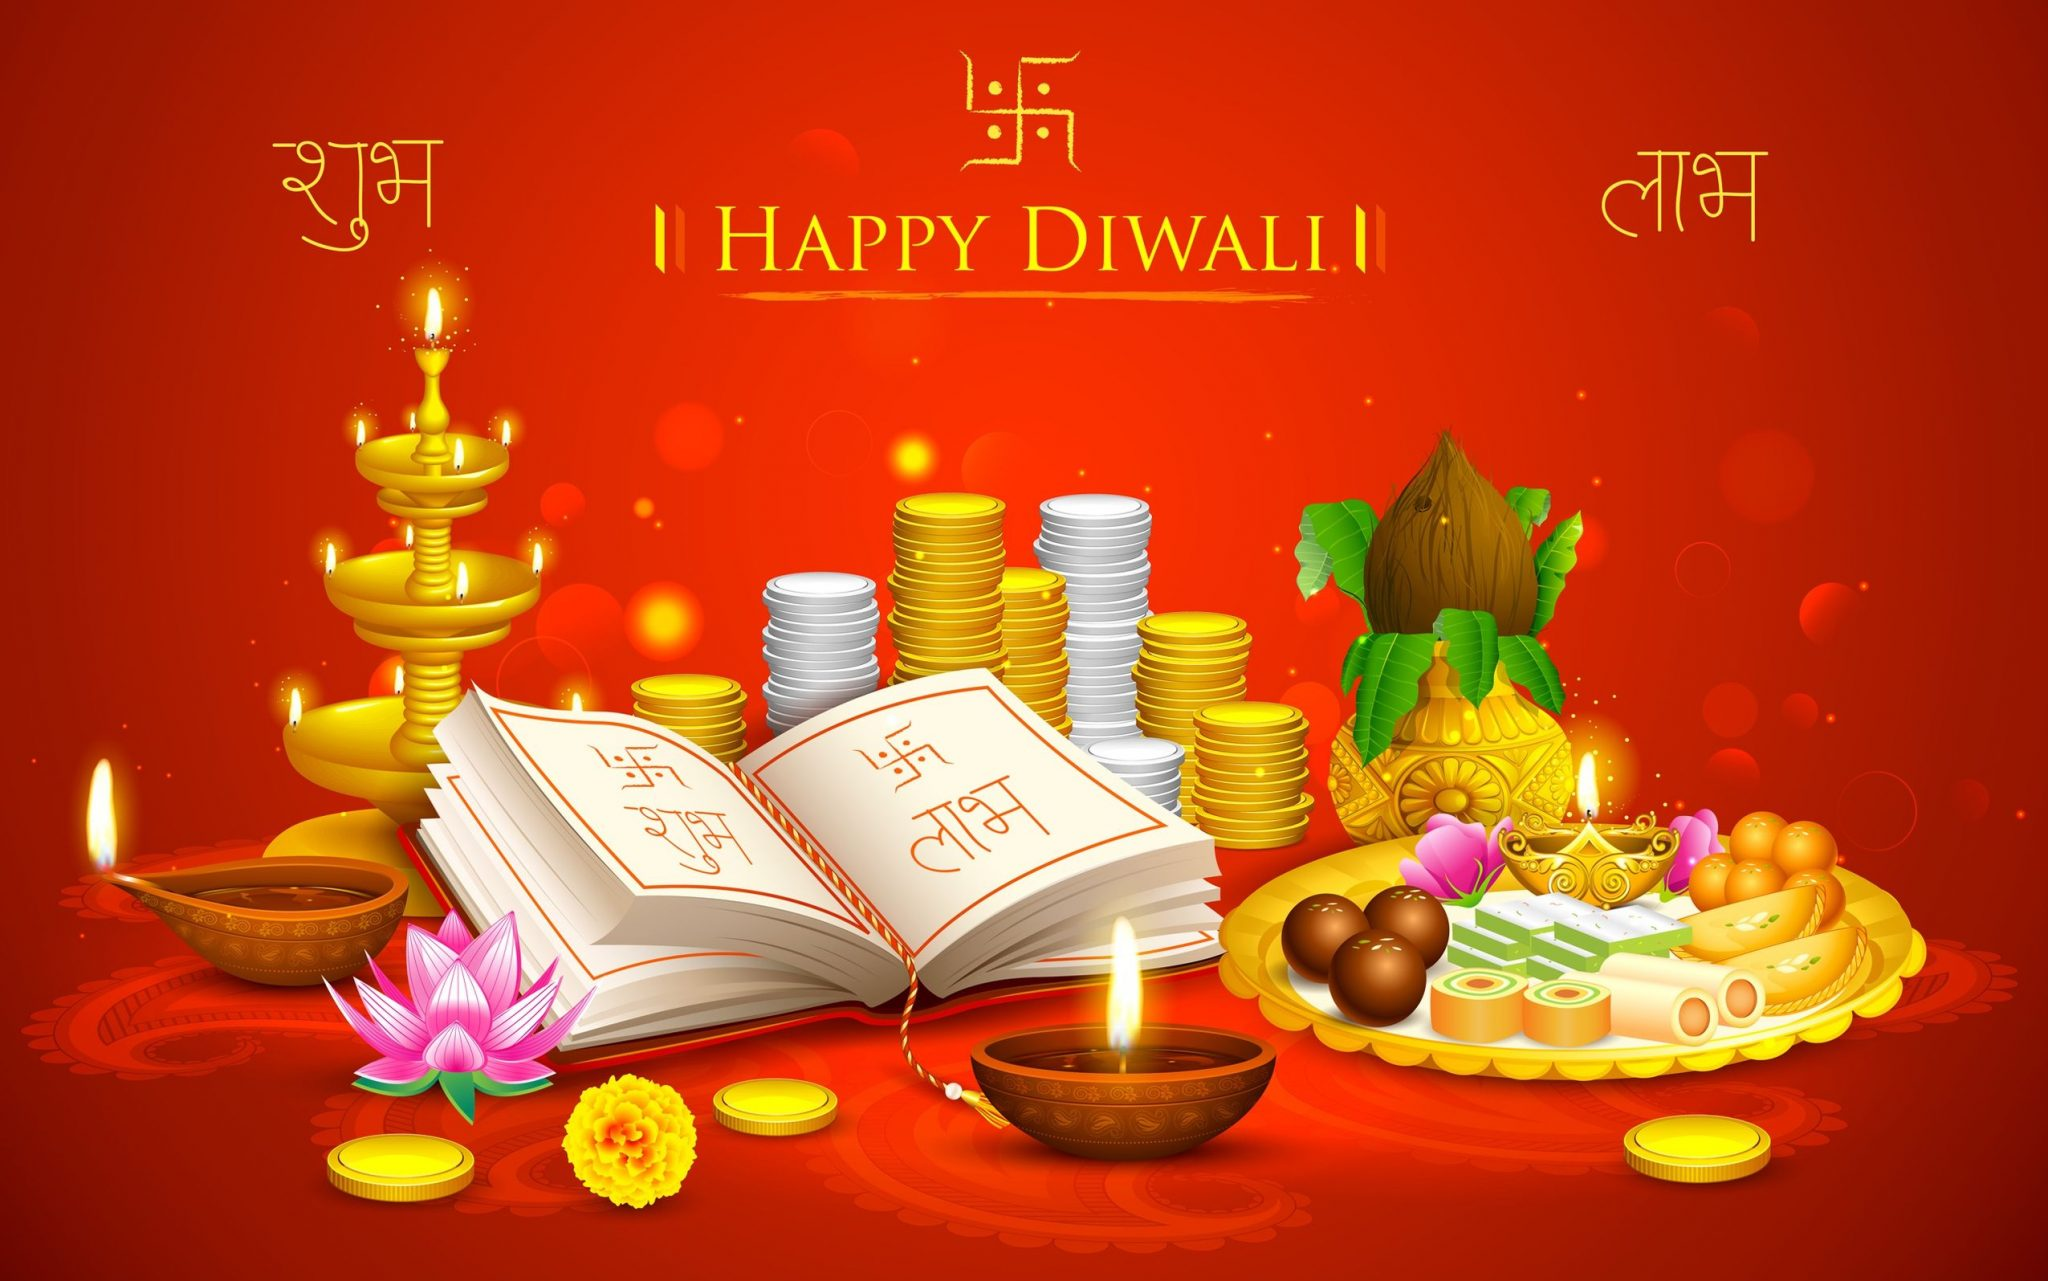 Shubh Labh Diwali Pictures for Wishes